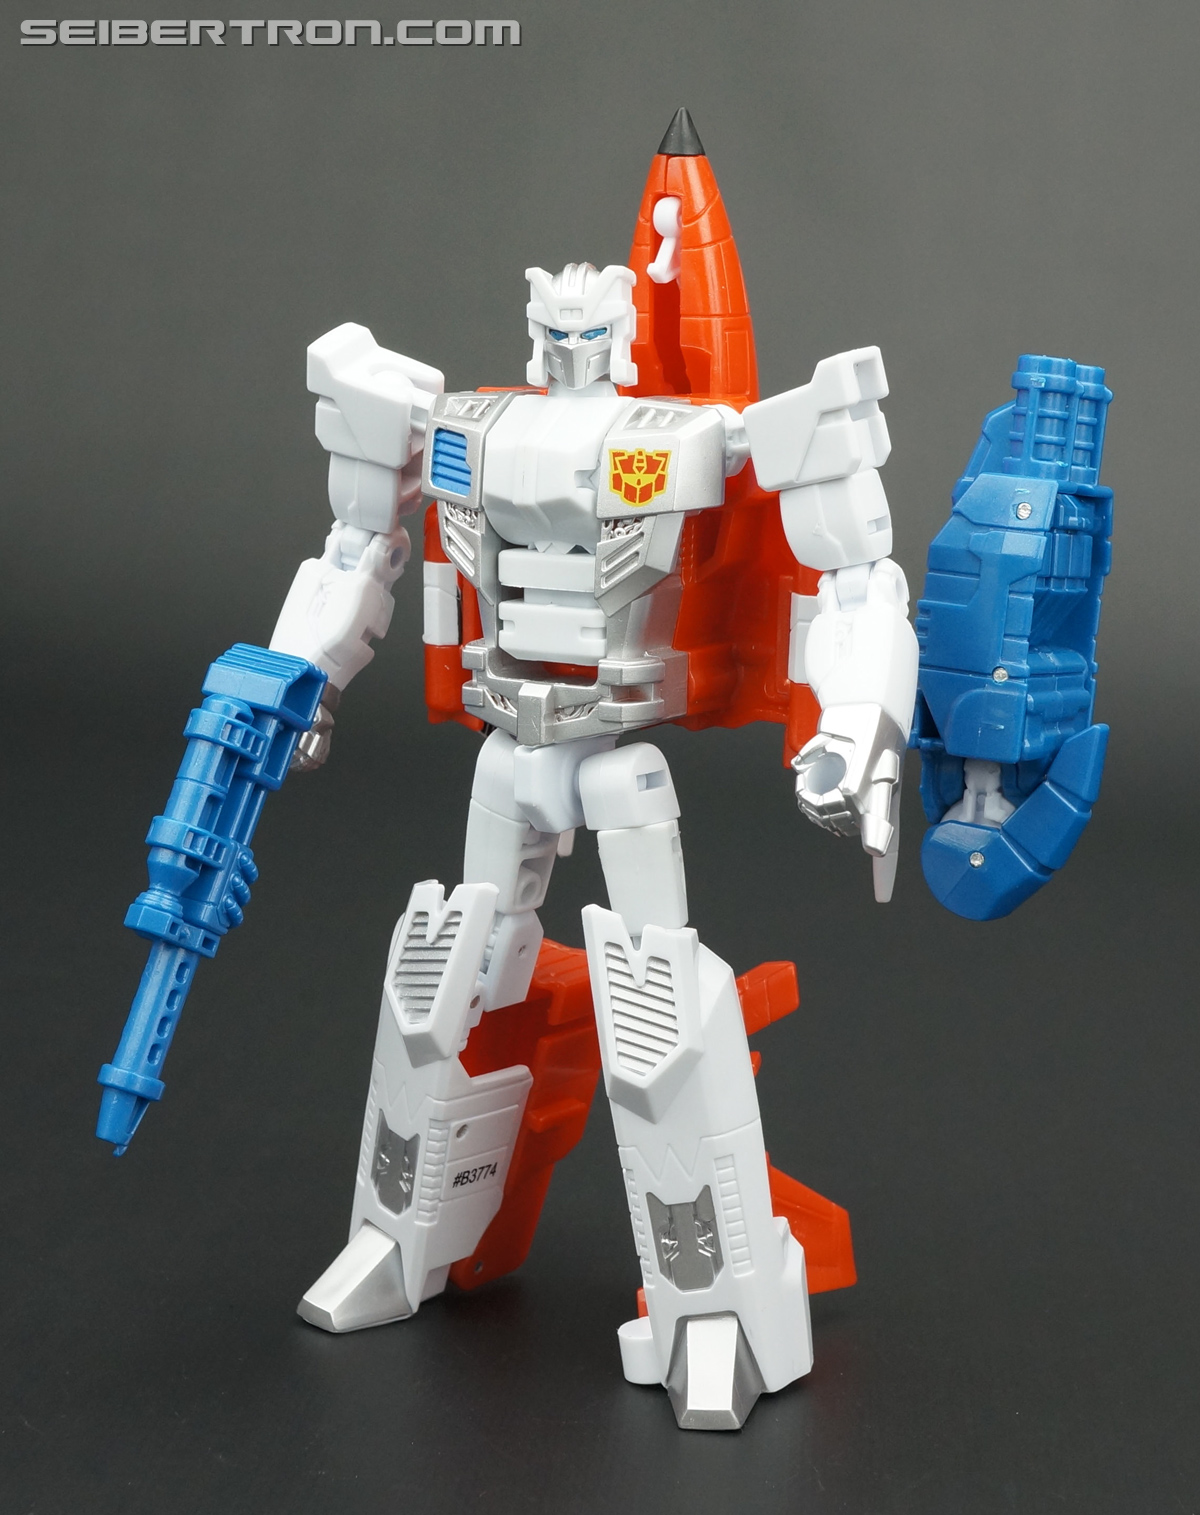 Transformers Generations Combiner Wars Firefly (Image #80 of 101)